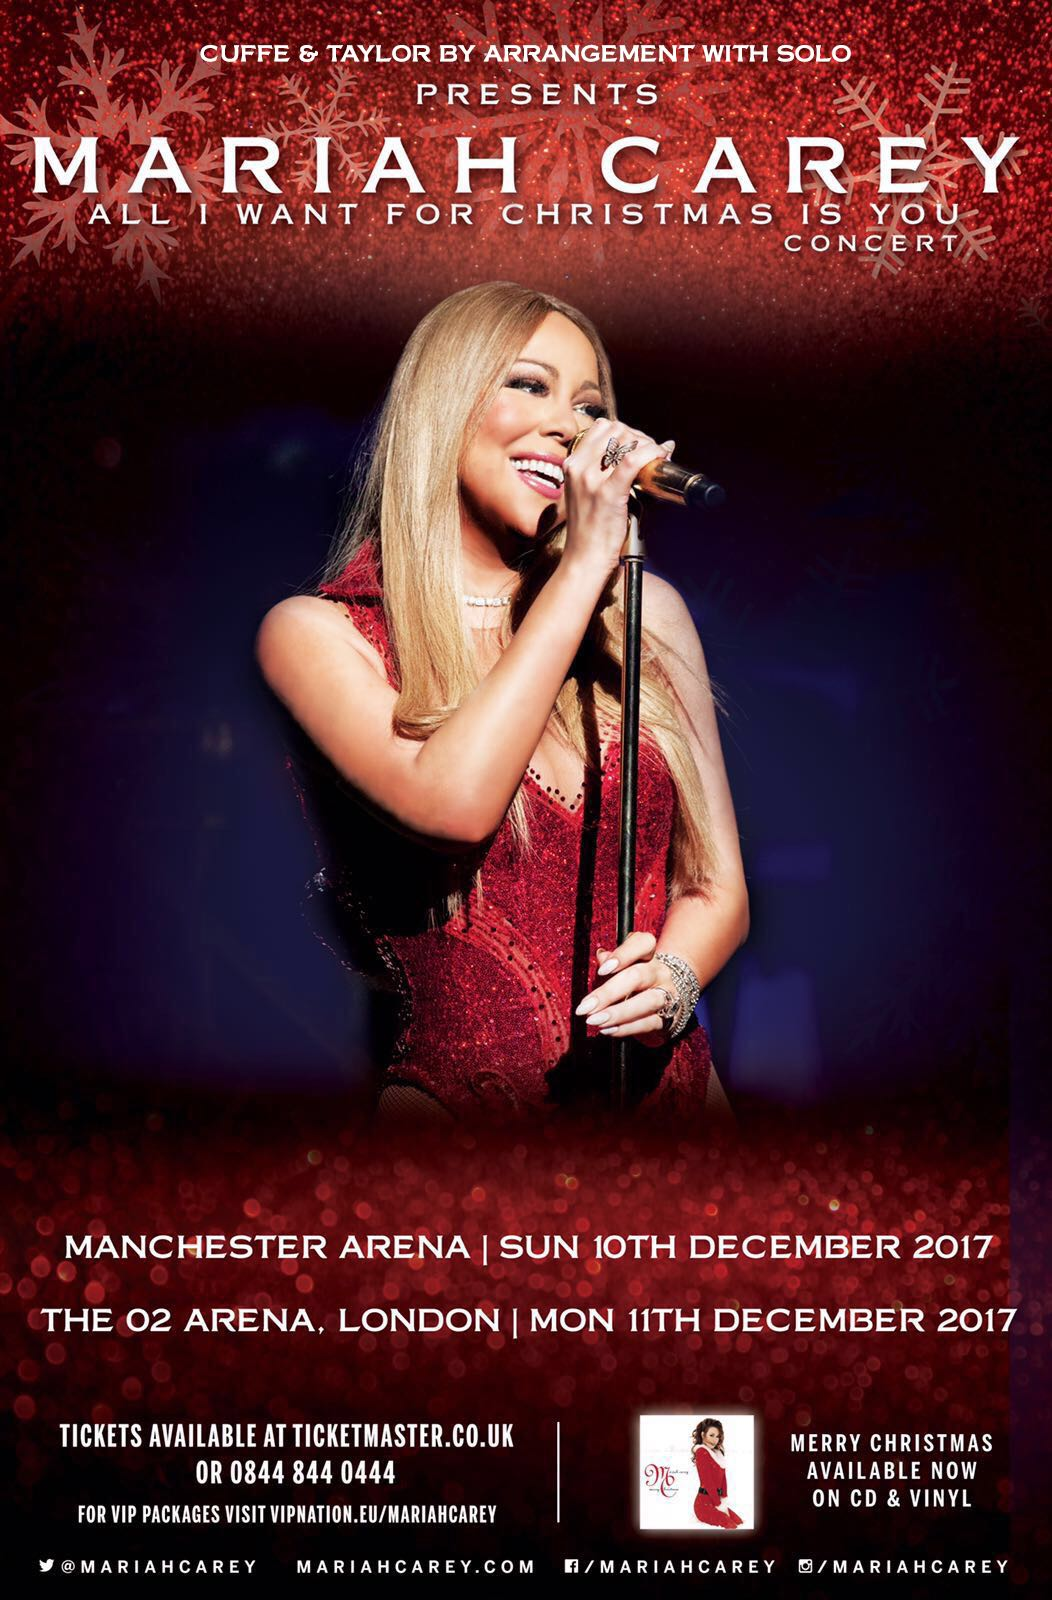 Mariah Carey To Bring Her 'All I Want For Christmas Is You' Concert To London & Manchester!